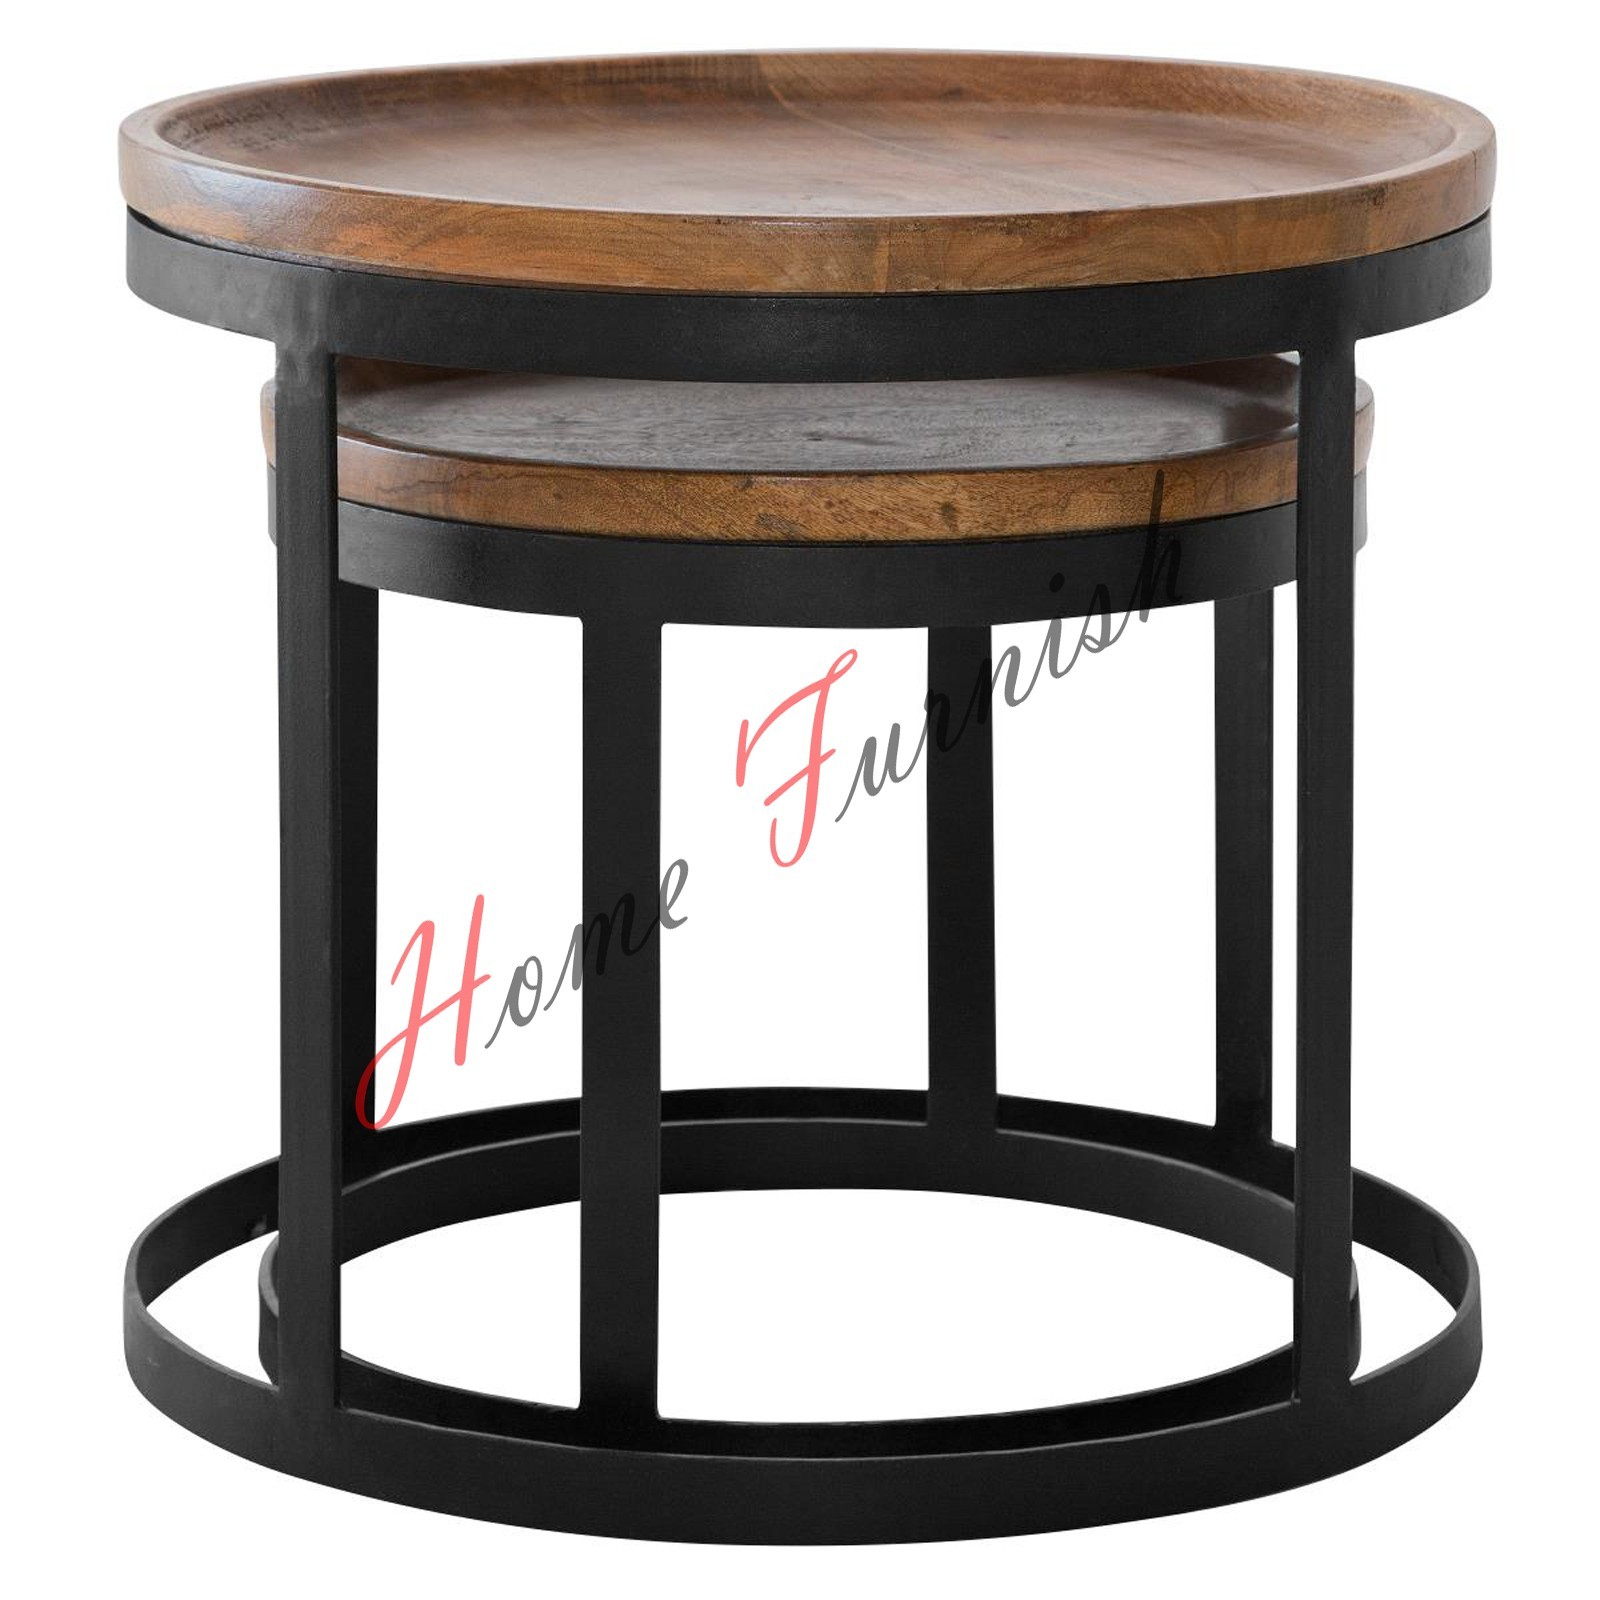 Set Of Two Lift Off Tray Tables Vintage Look Industrial Style Coffee Table Neste Tables